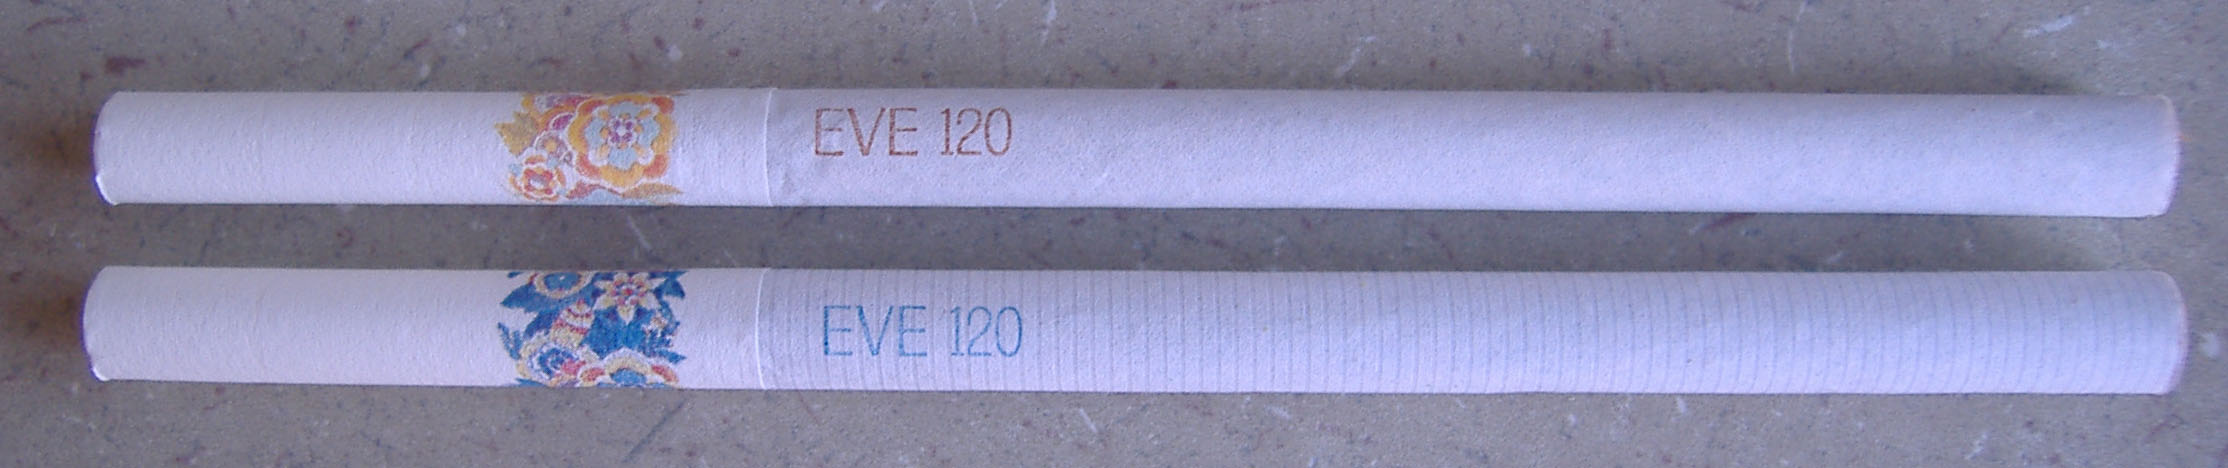 Eve Cigarettes Blue